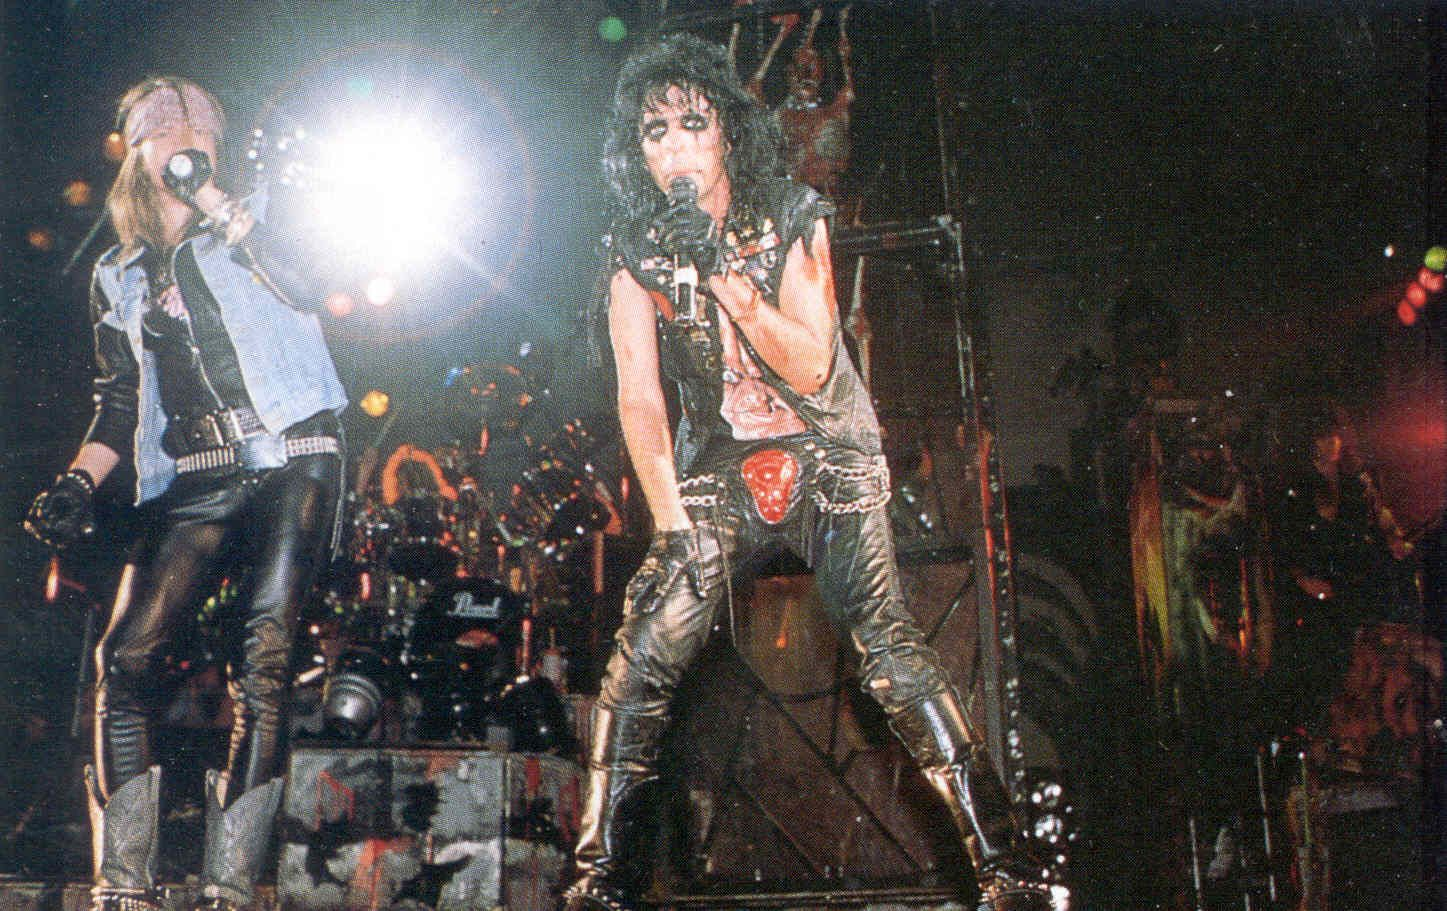 Alice Cooper & Axl Rose on stage